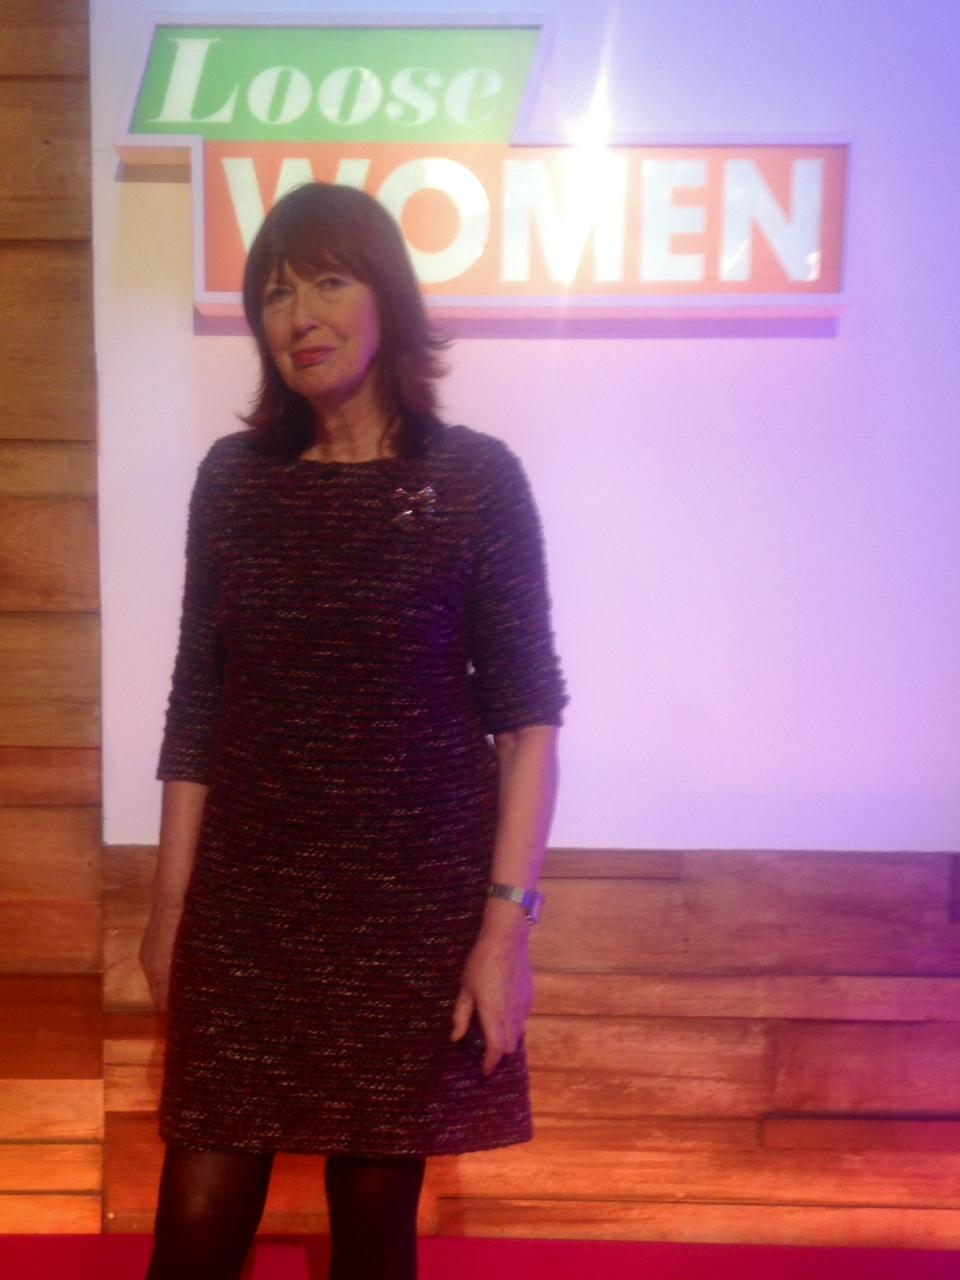 epub The Kunzig Shamarpas